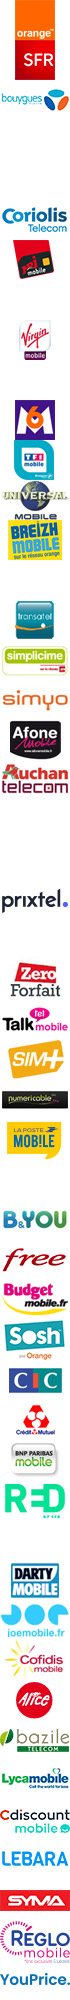 forfait La Poste Mobile Music 2h 5Go sans mobile sans engagement